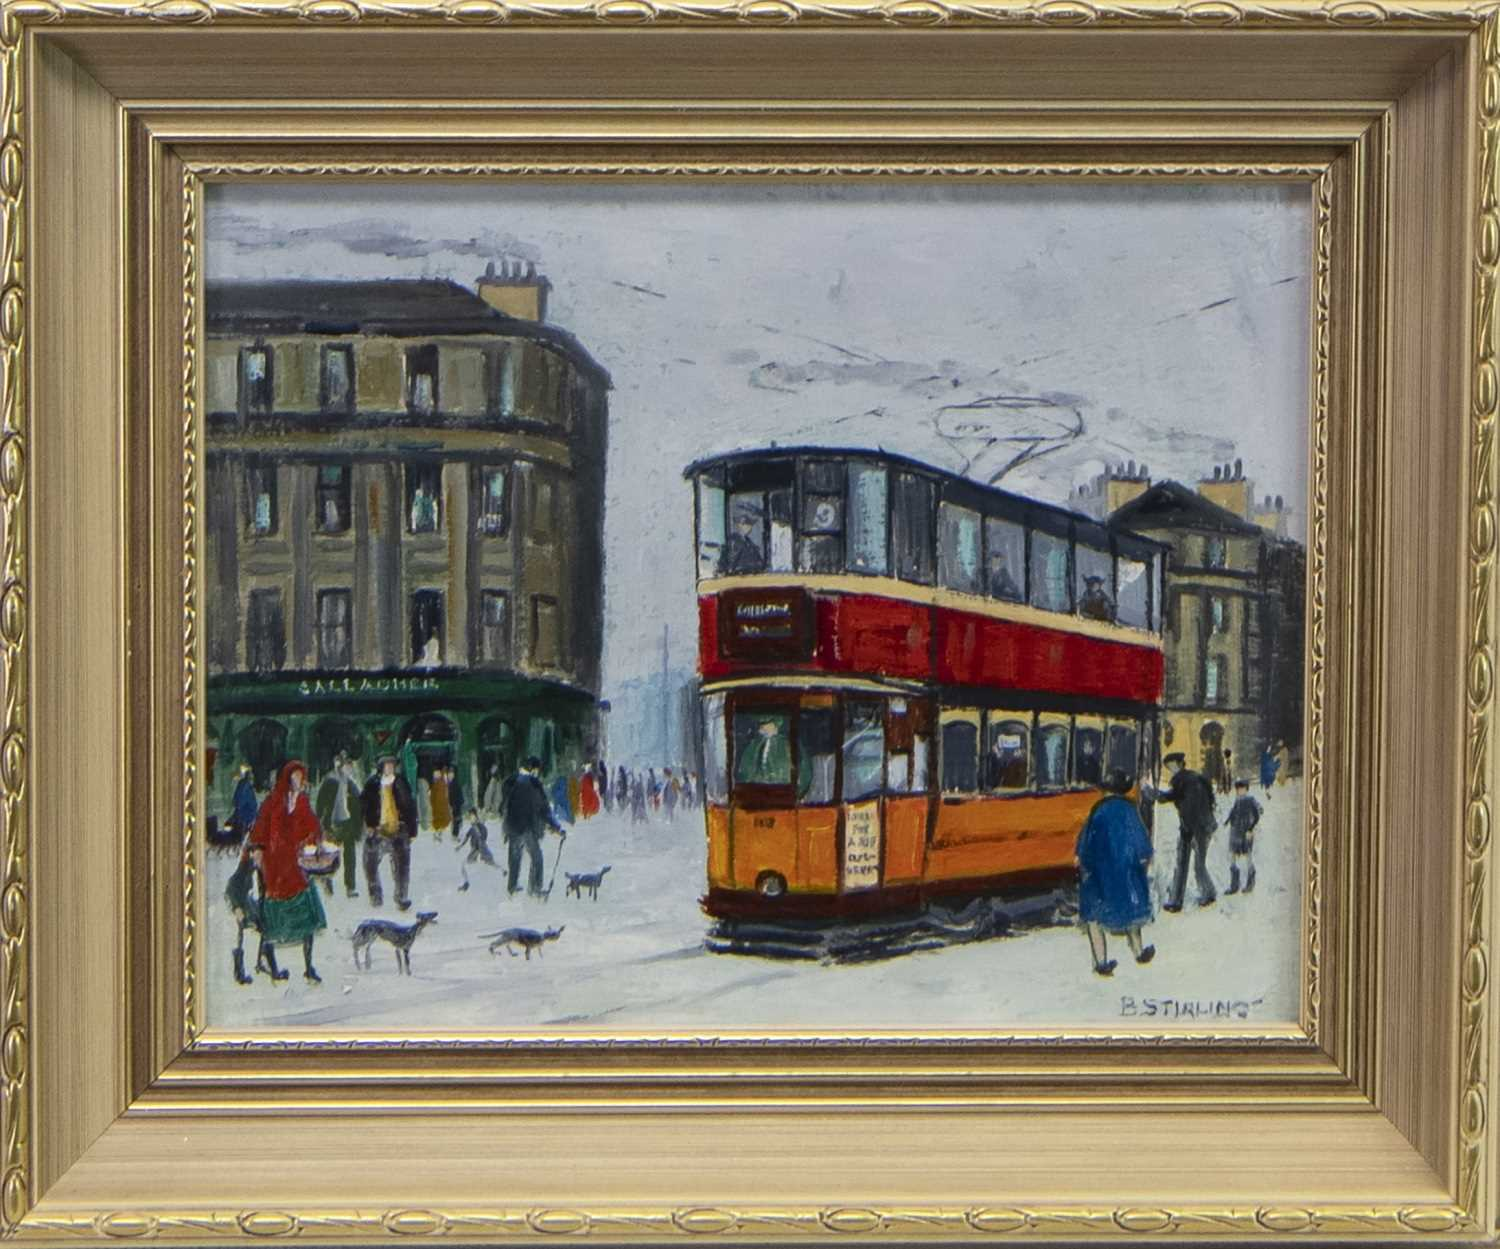 Lot 550 - MINERVA STREET, AN OIL BY BETTY STIRLING